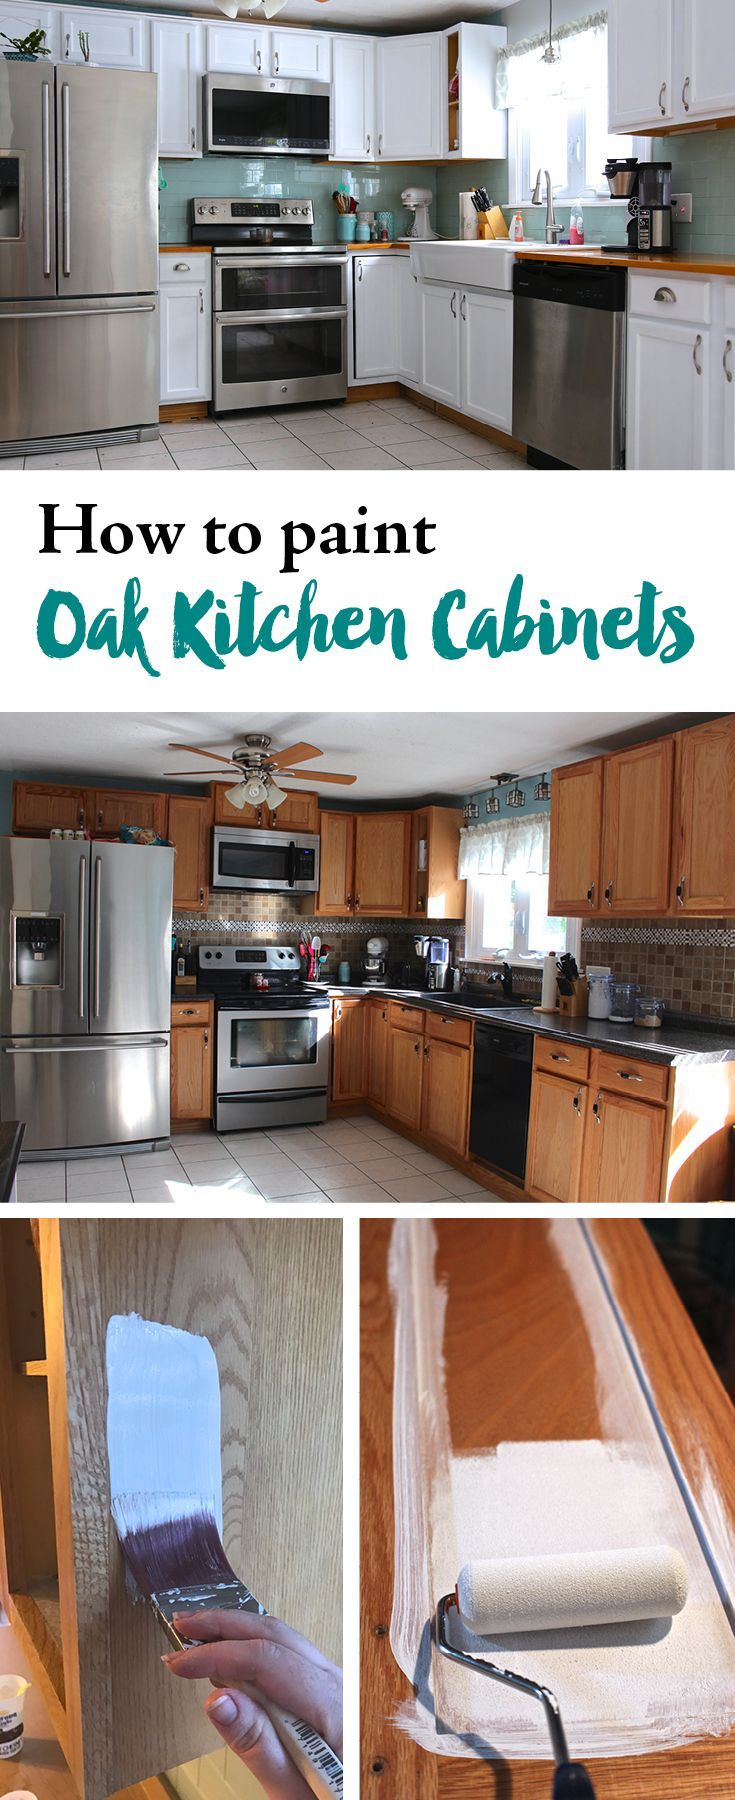 How To Paint Oak Kitchen Cabinets Weekend Craft In 2020 Diy Kitchen Renovation Oak Kitchen Cabinets Clean Kitchen Cabinets